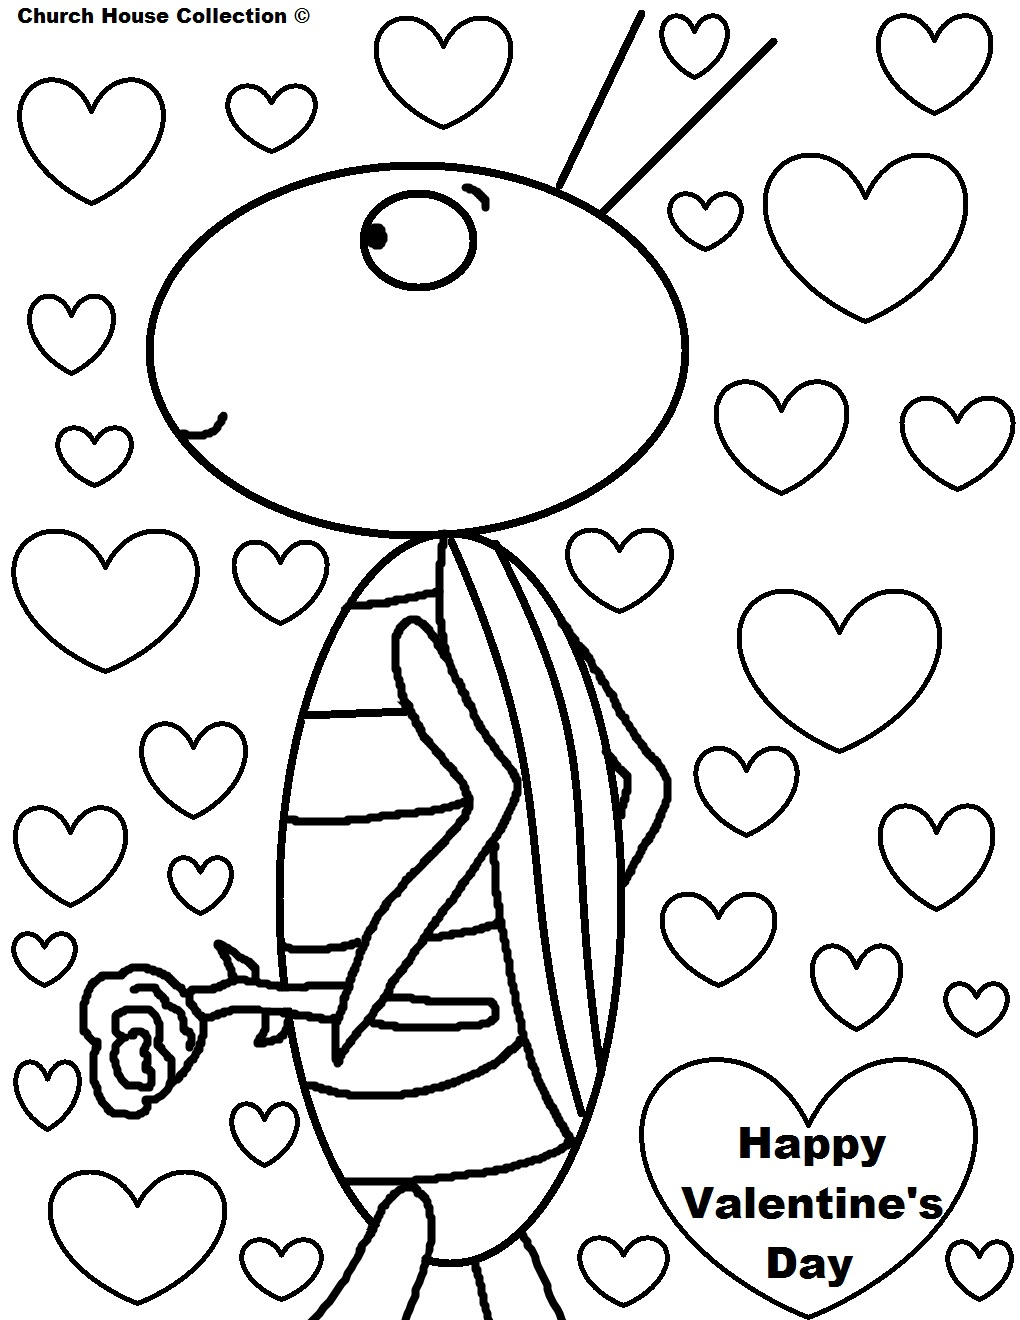 children s christian valentine coloring pages photo - 1